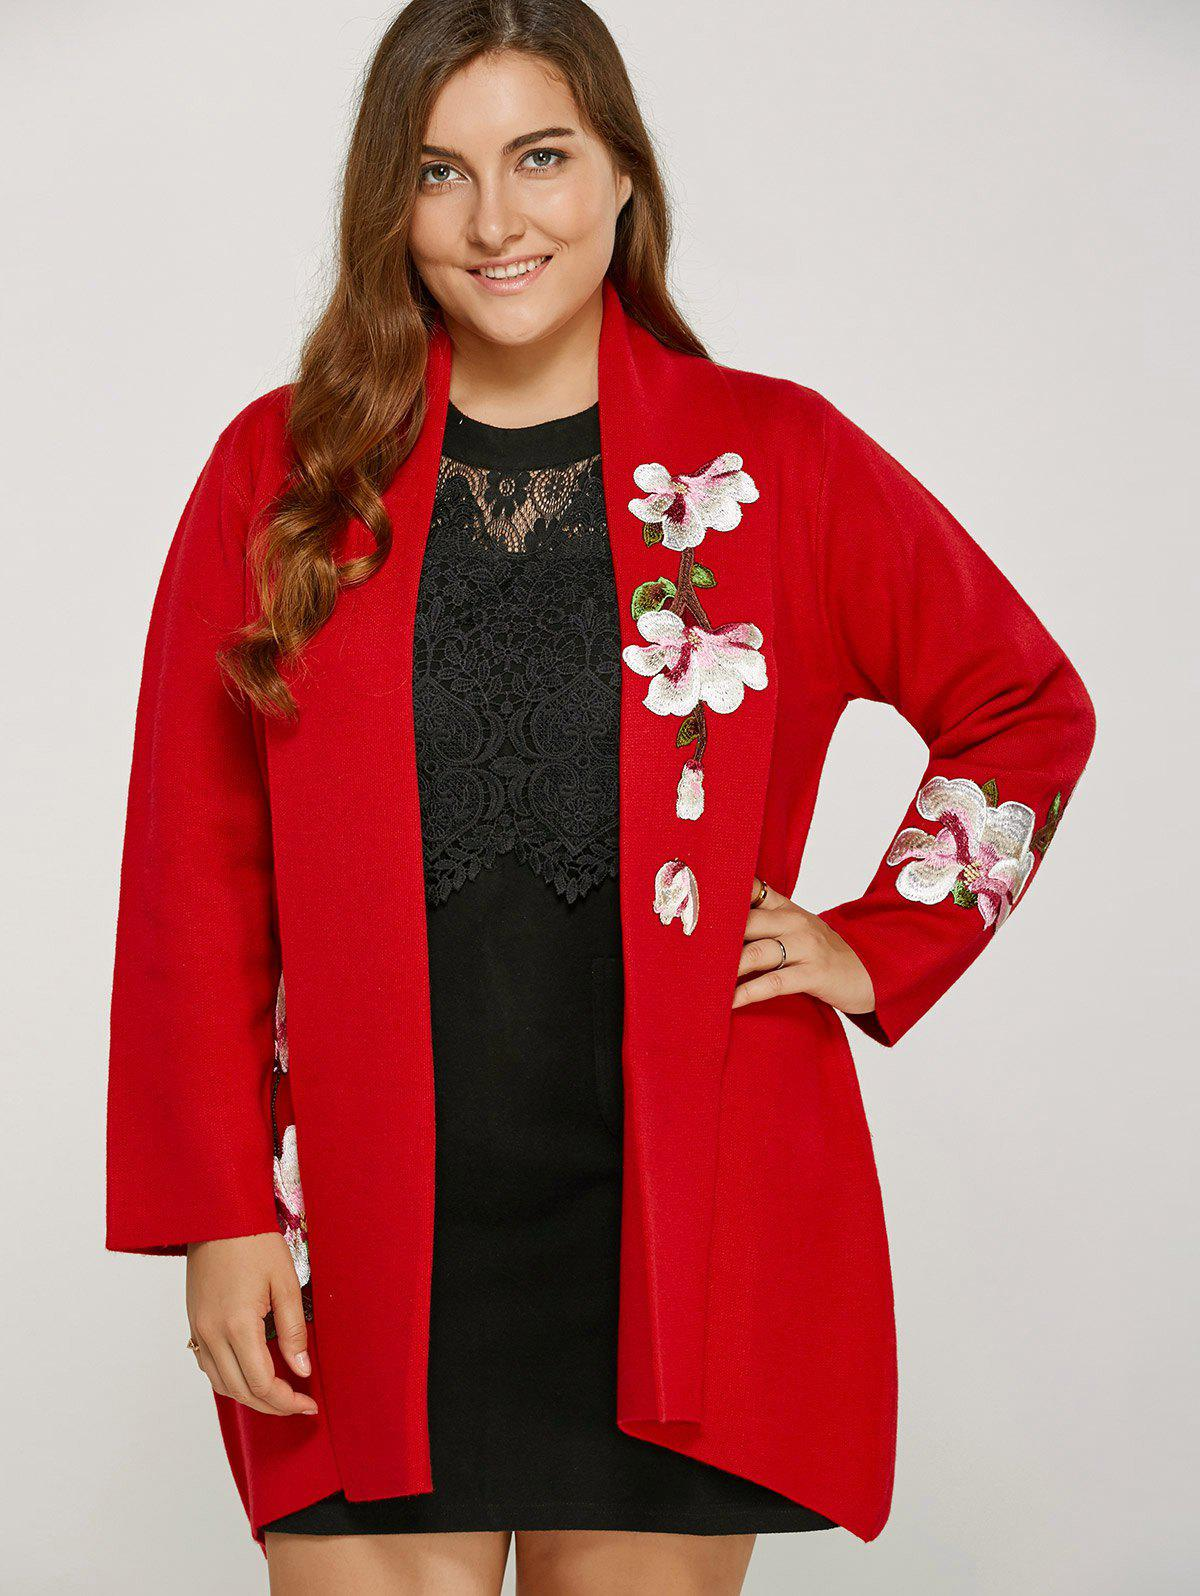 Store Wintersweet Embroidery Plus Size Floral Cardigan